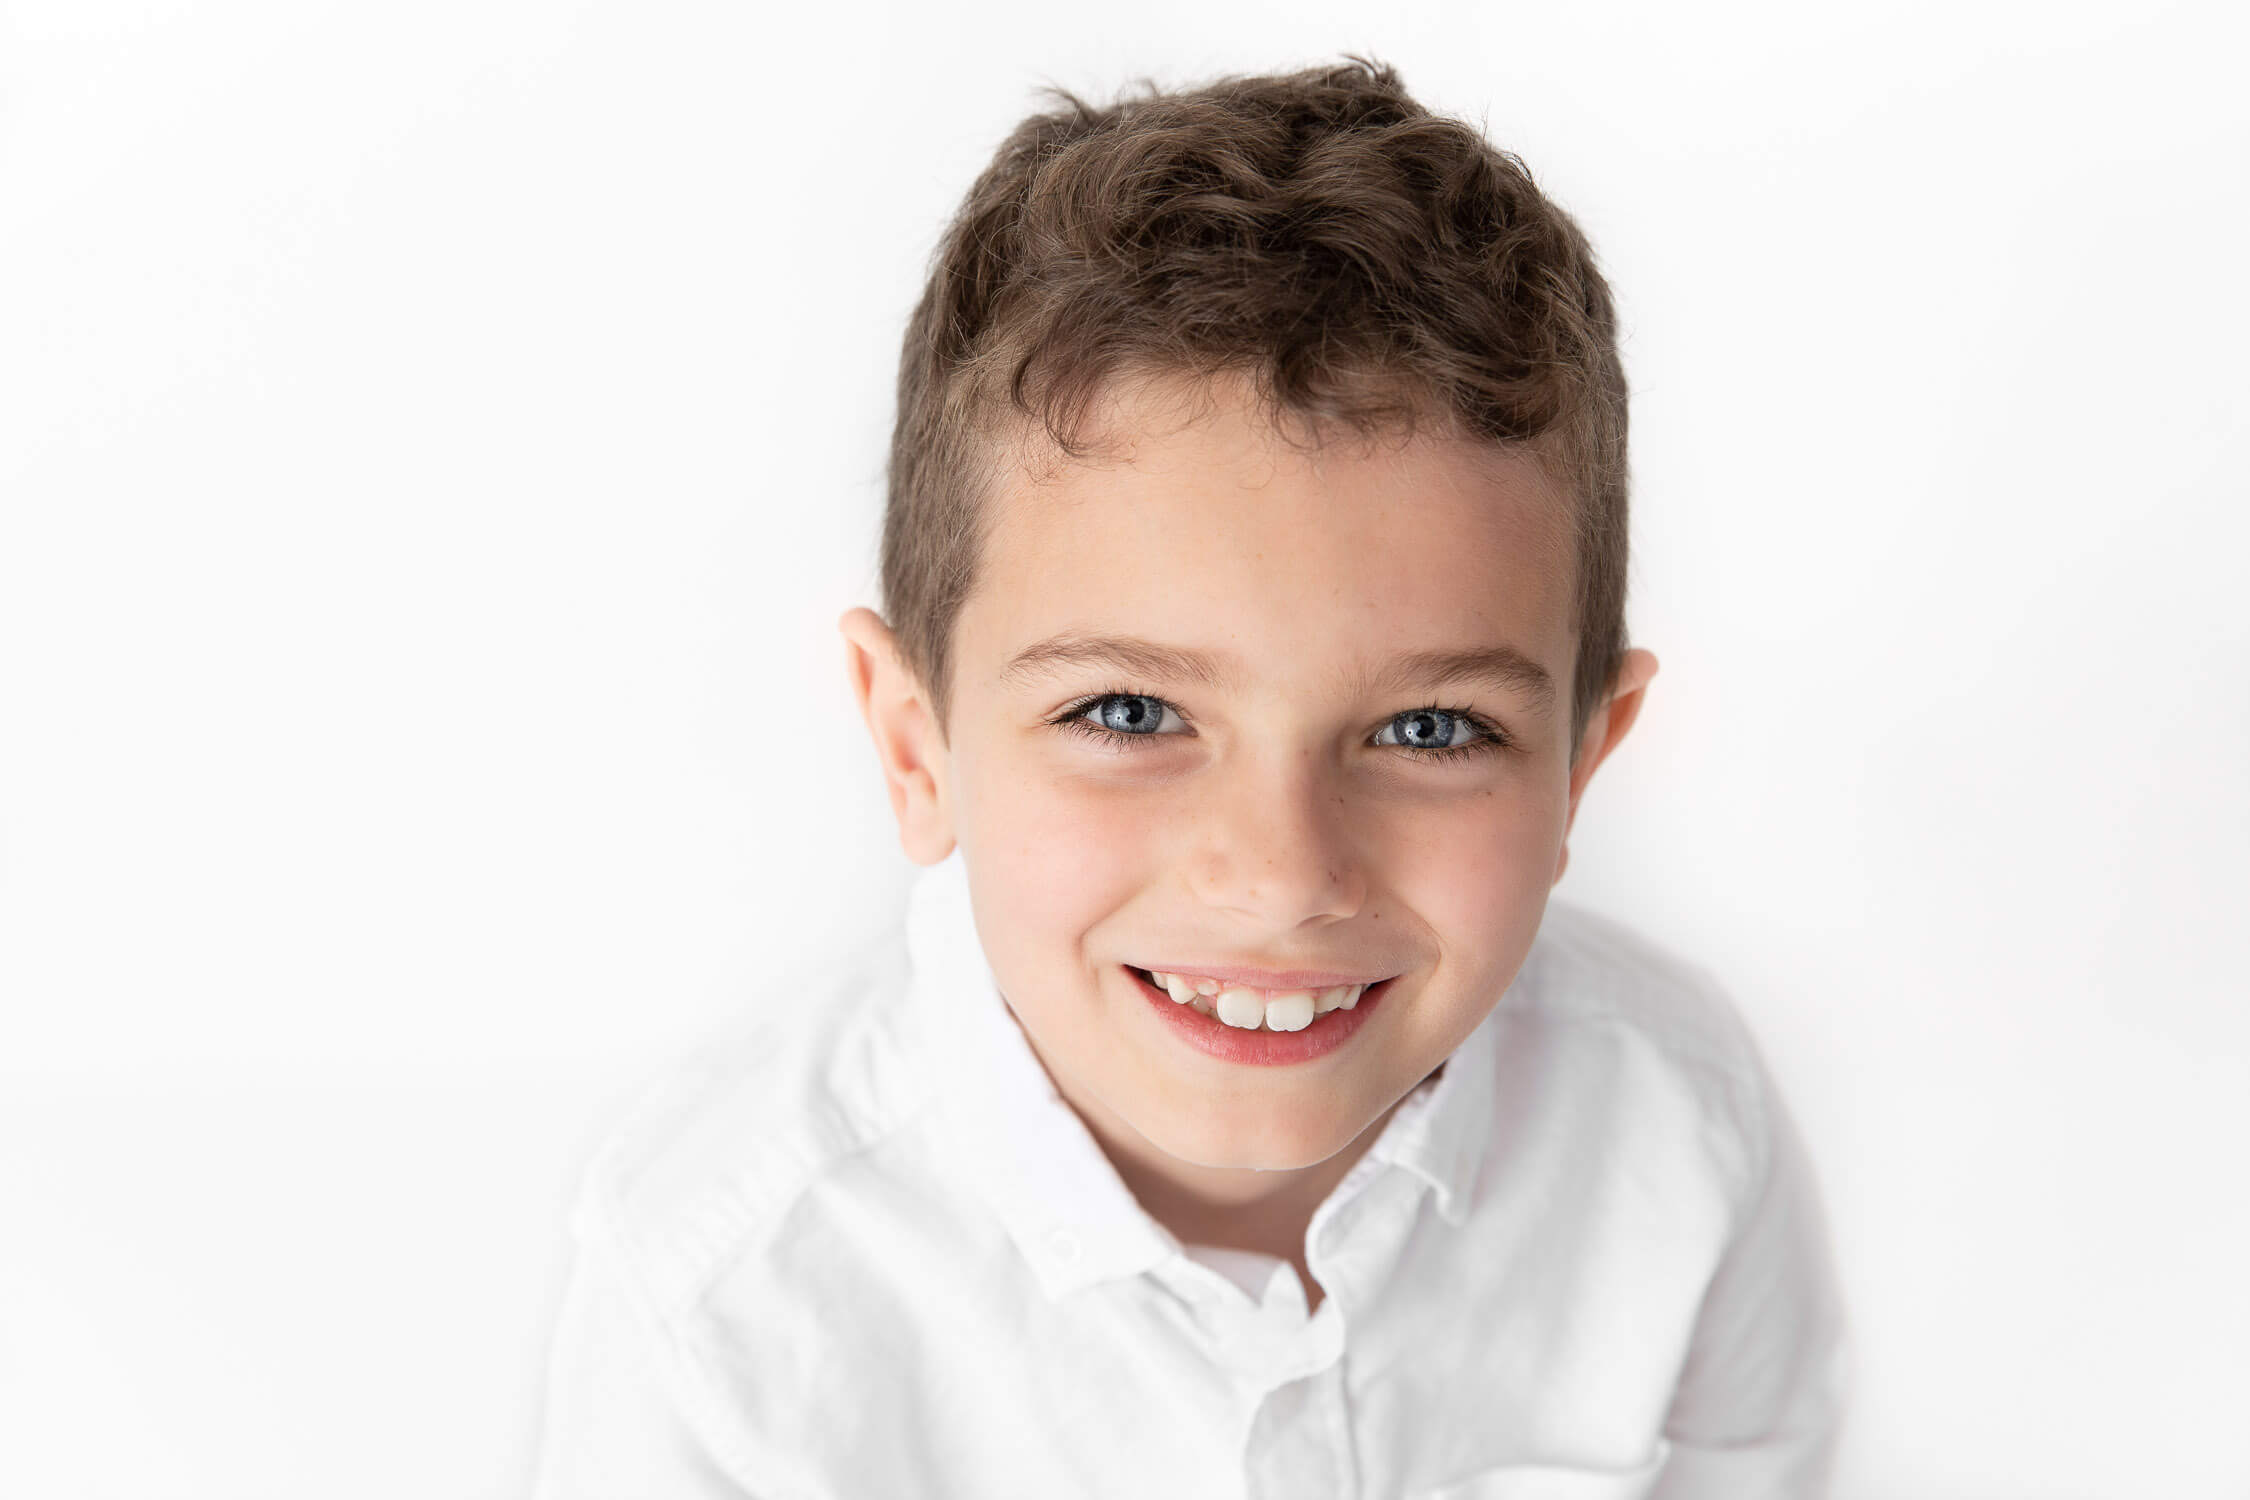 closeup of a boy wearing white shirt on a white background smiling at camera